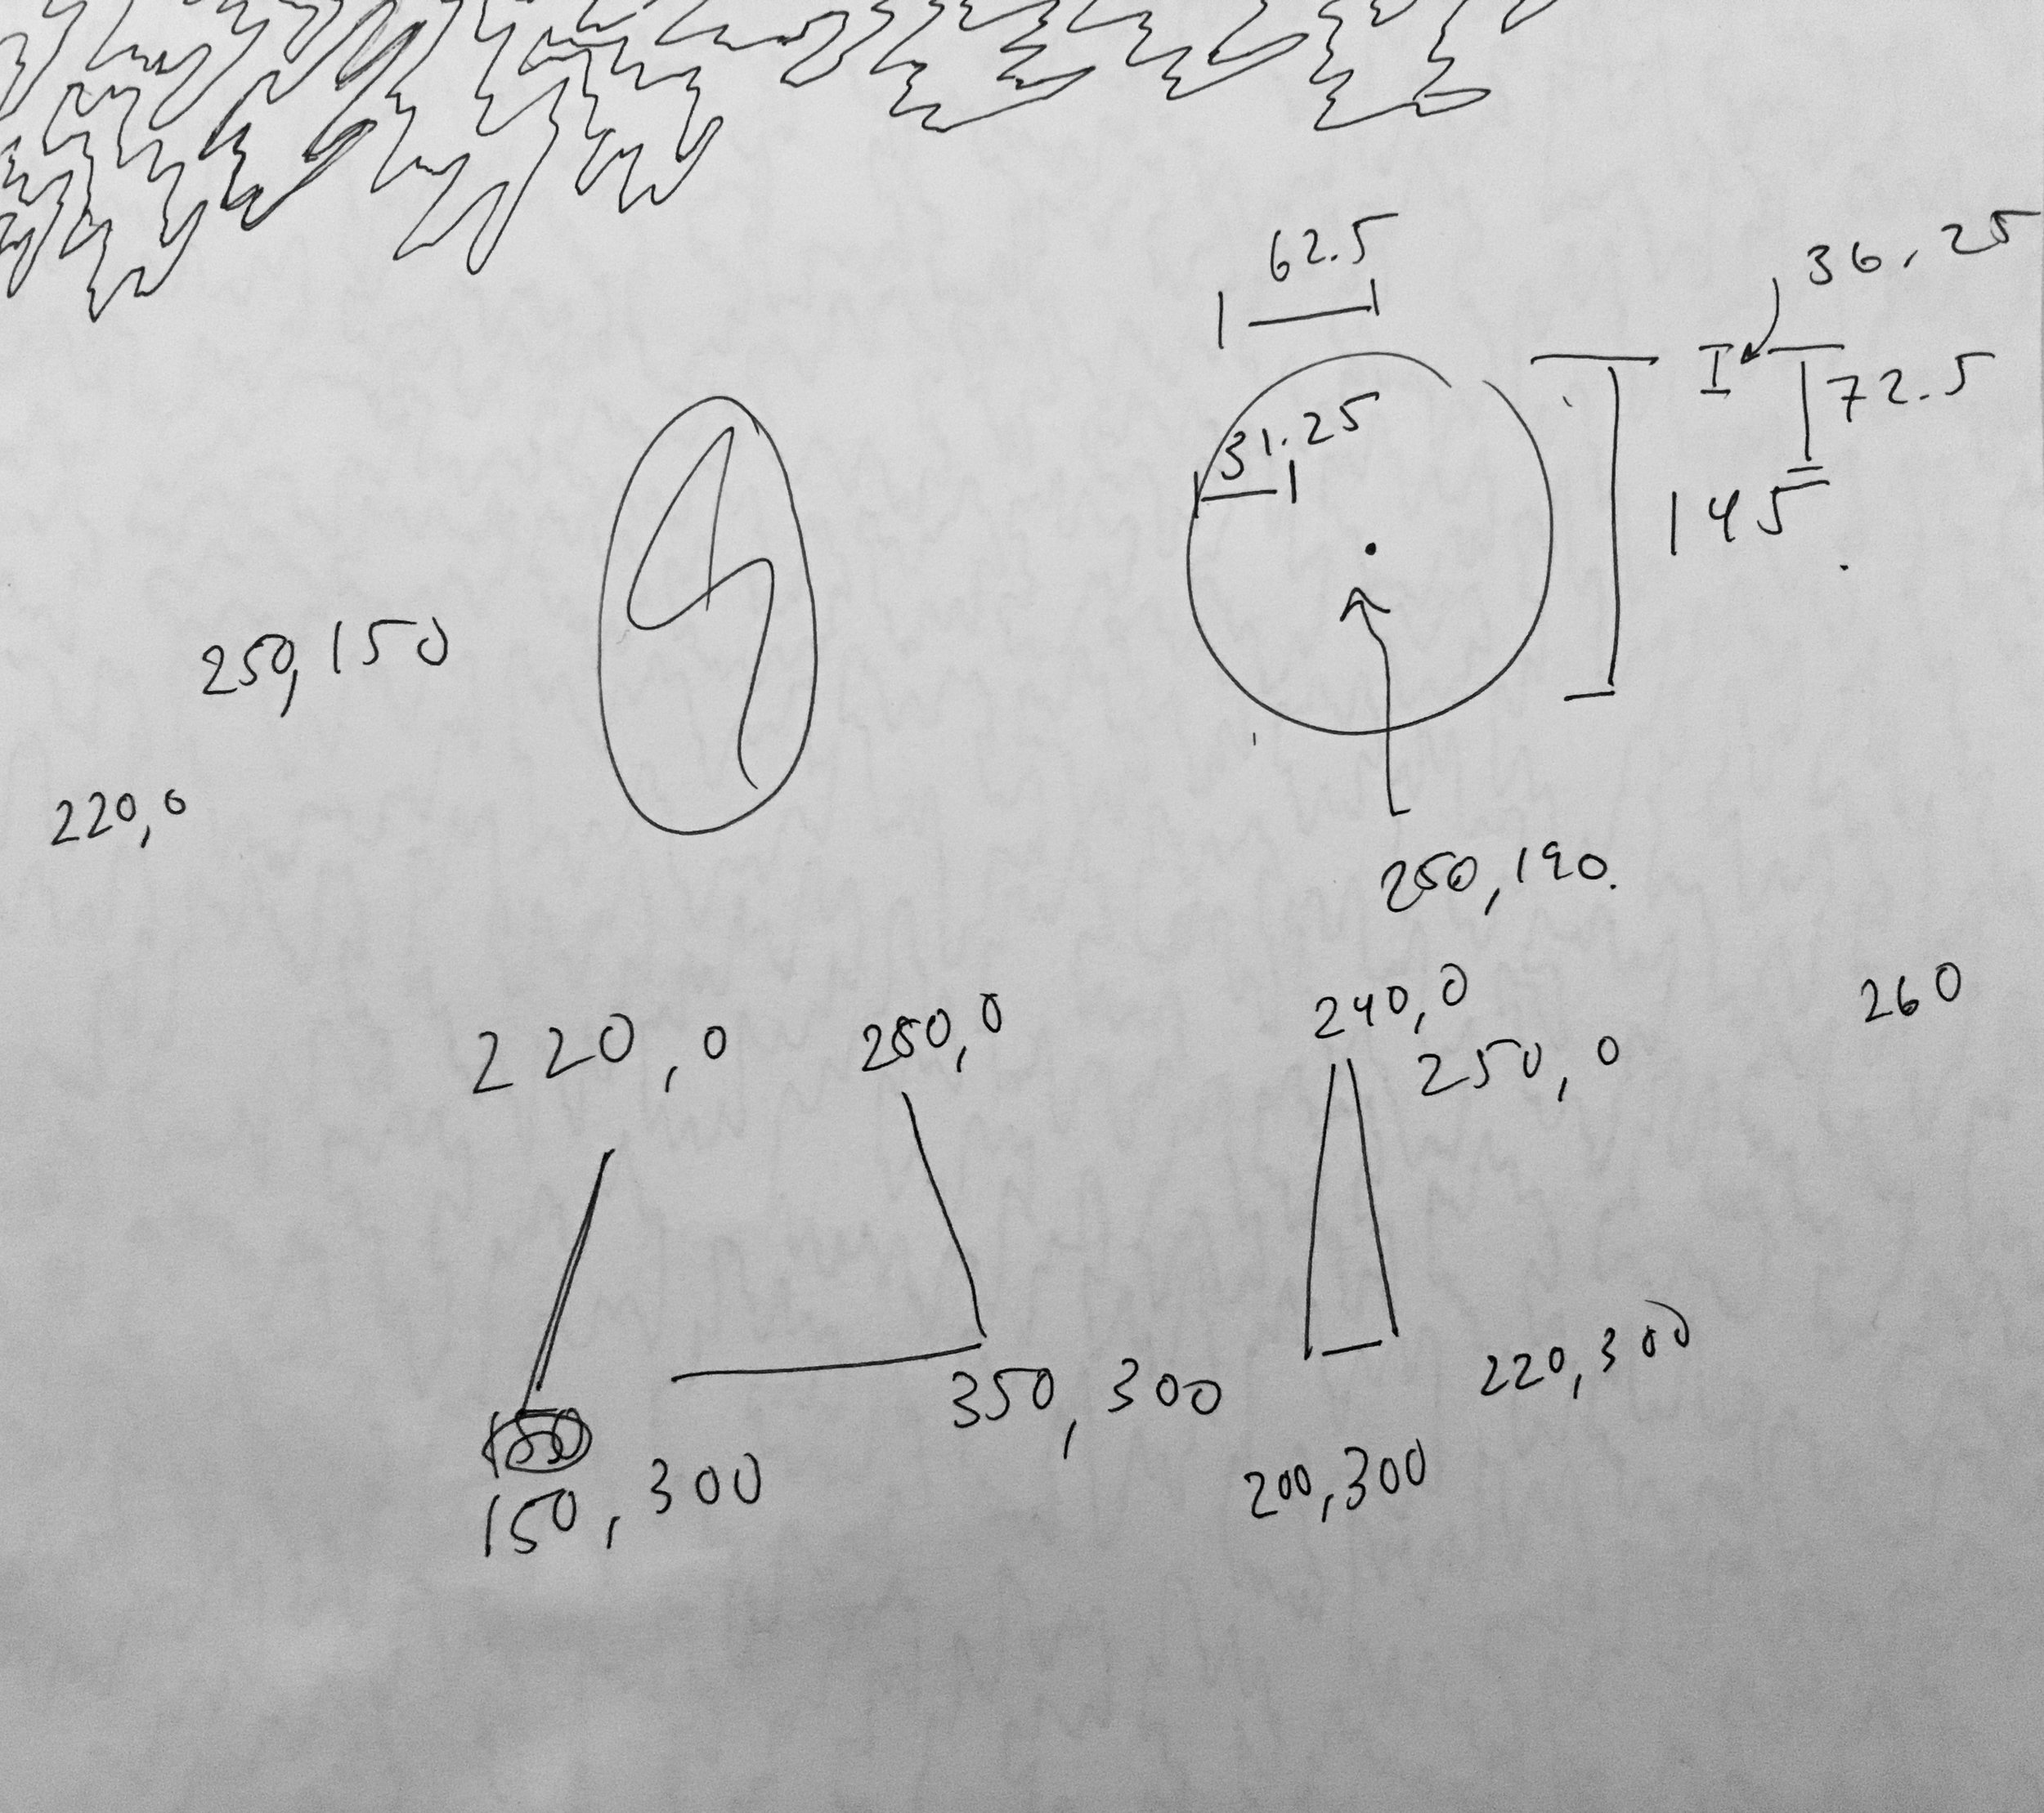 Random numbers and pictures that I jotted down while creating the sketch.